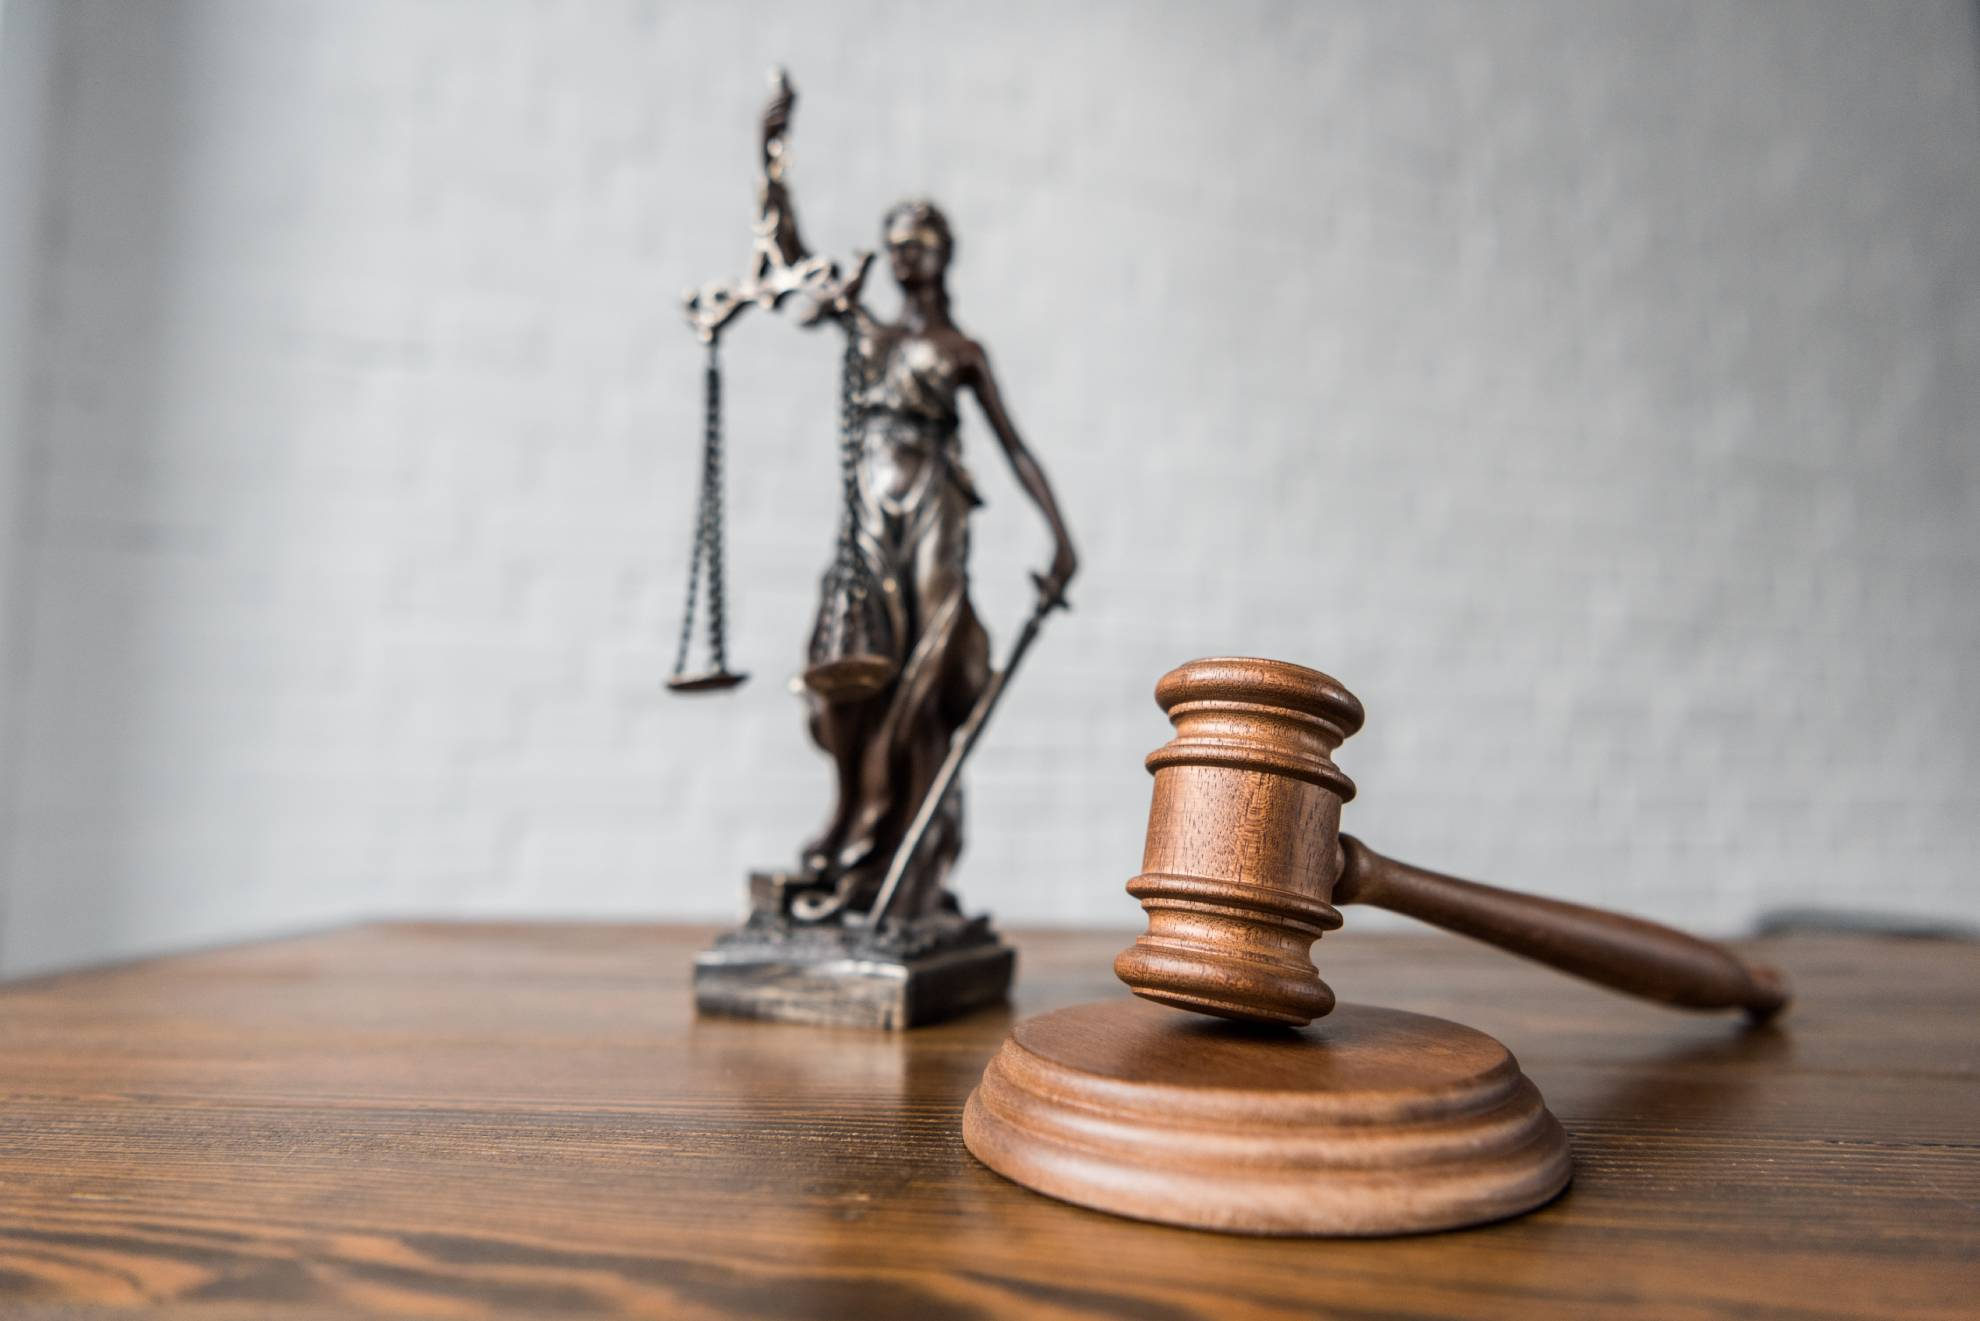 close-up-shot-of-judge-gavel-and-themis-statue-on–392HR2J (1)